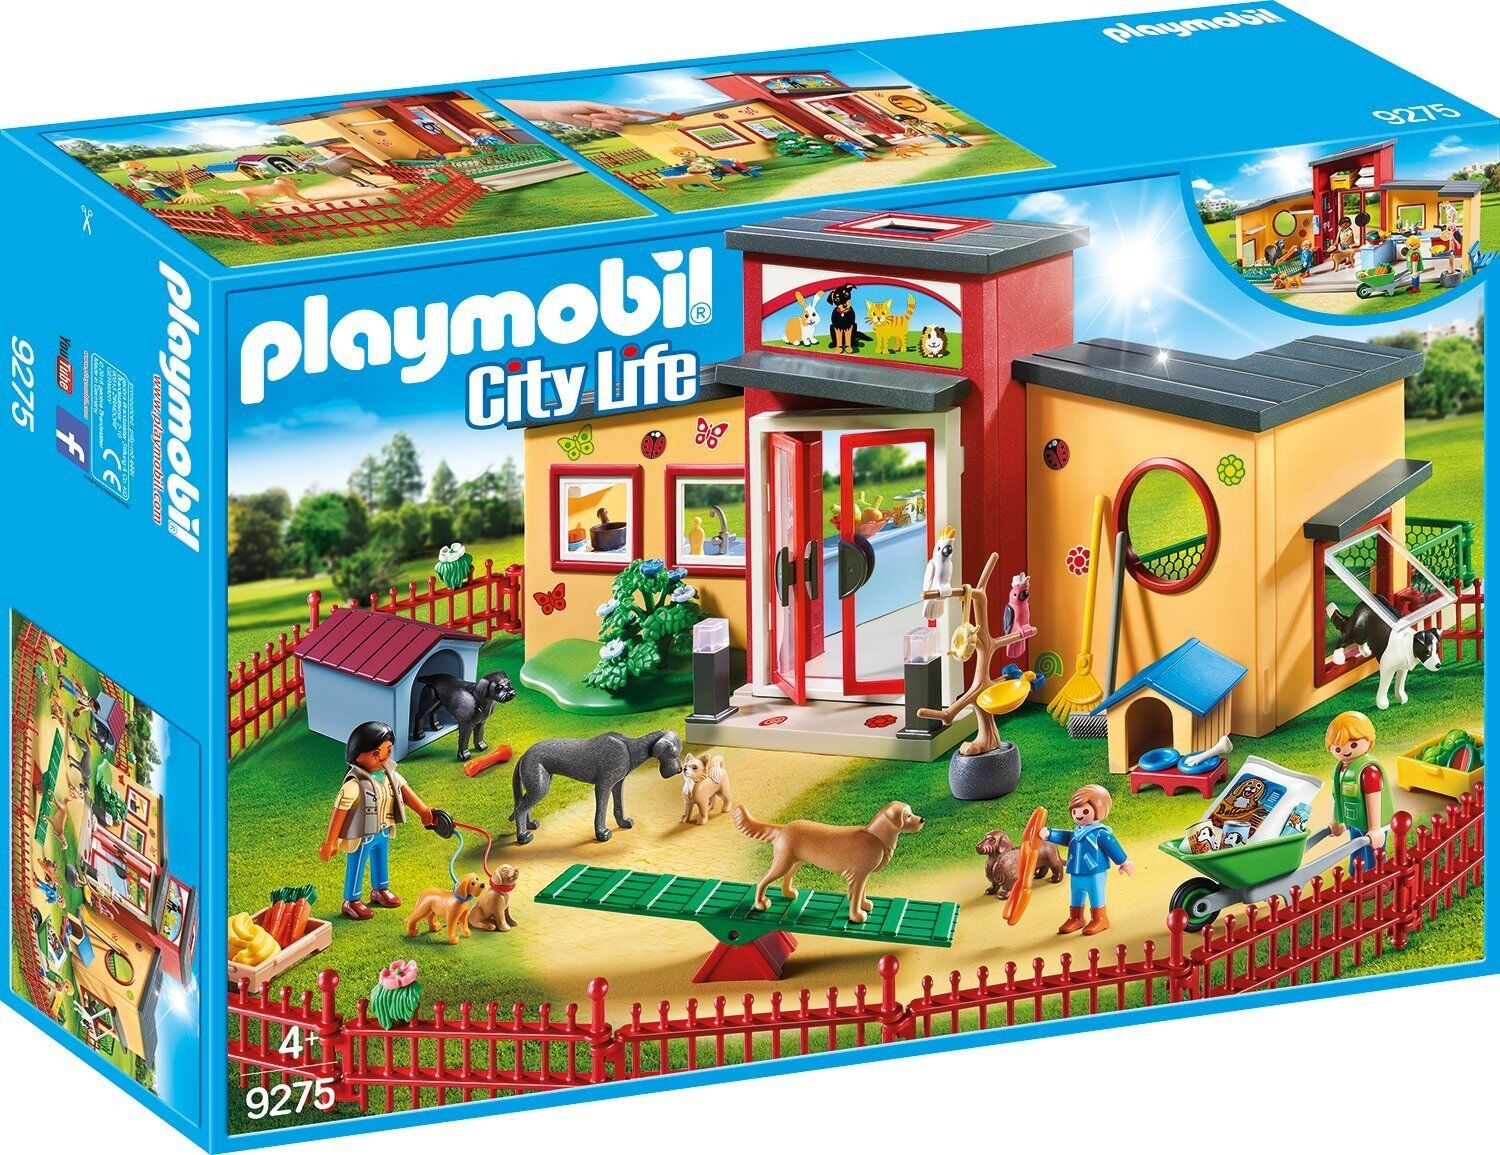 Playmobil City Life 9275 Hotel de mascotas con área de juegos - Nuovo and sealed